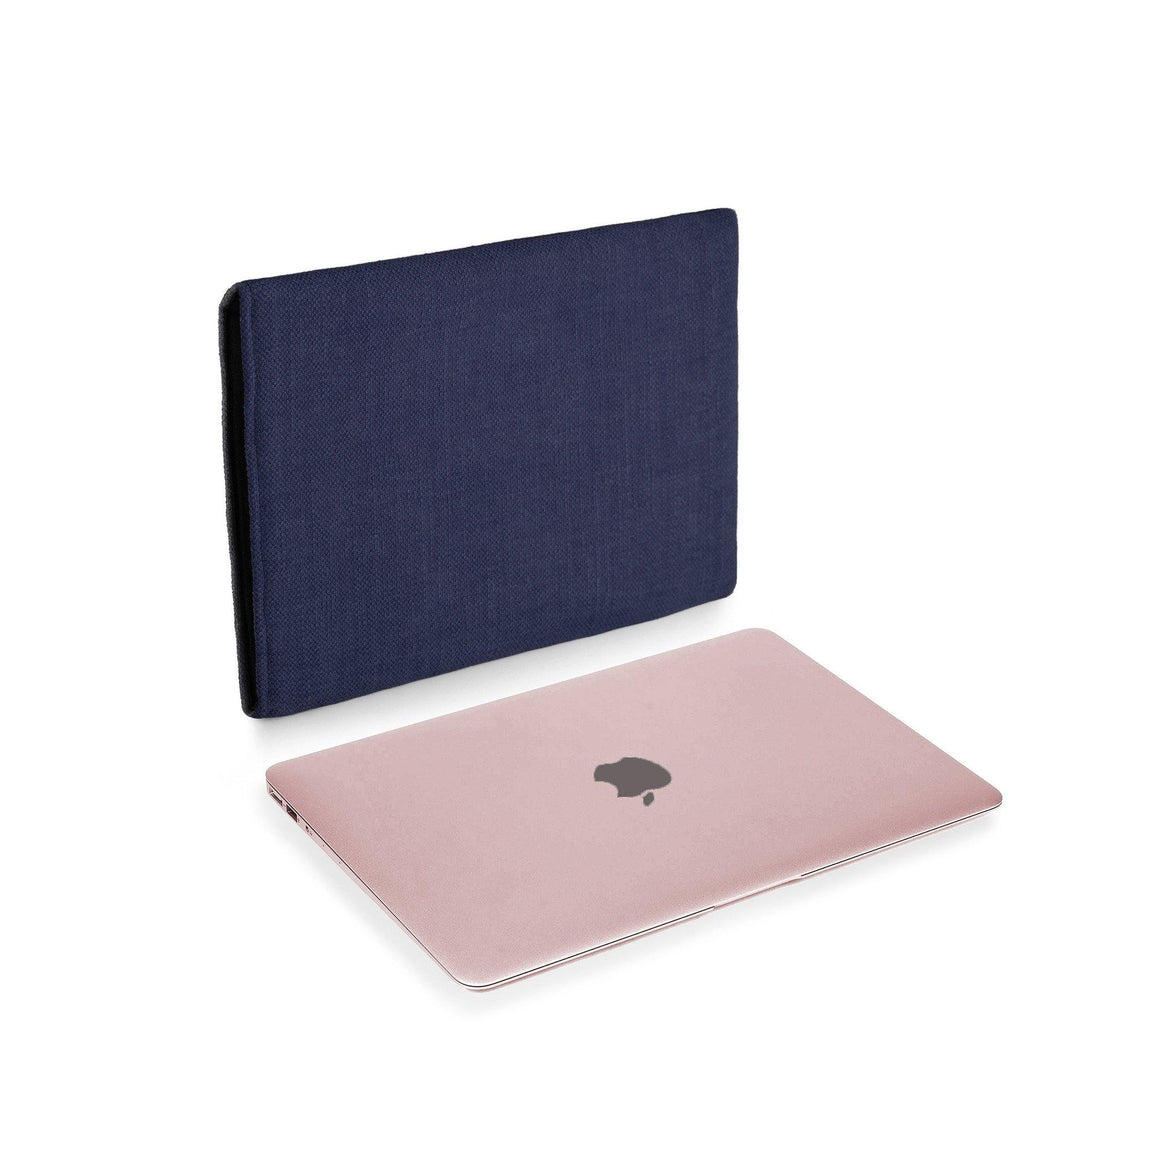 MacBook Linen Navy